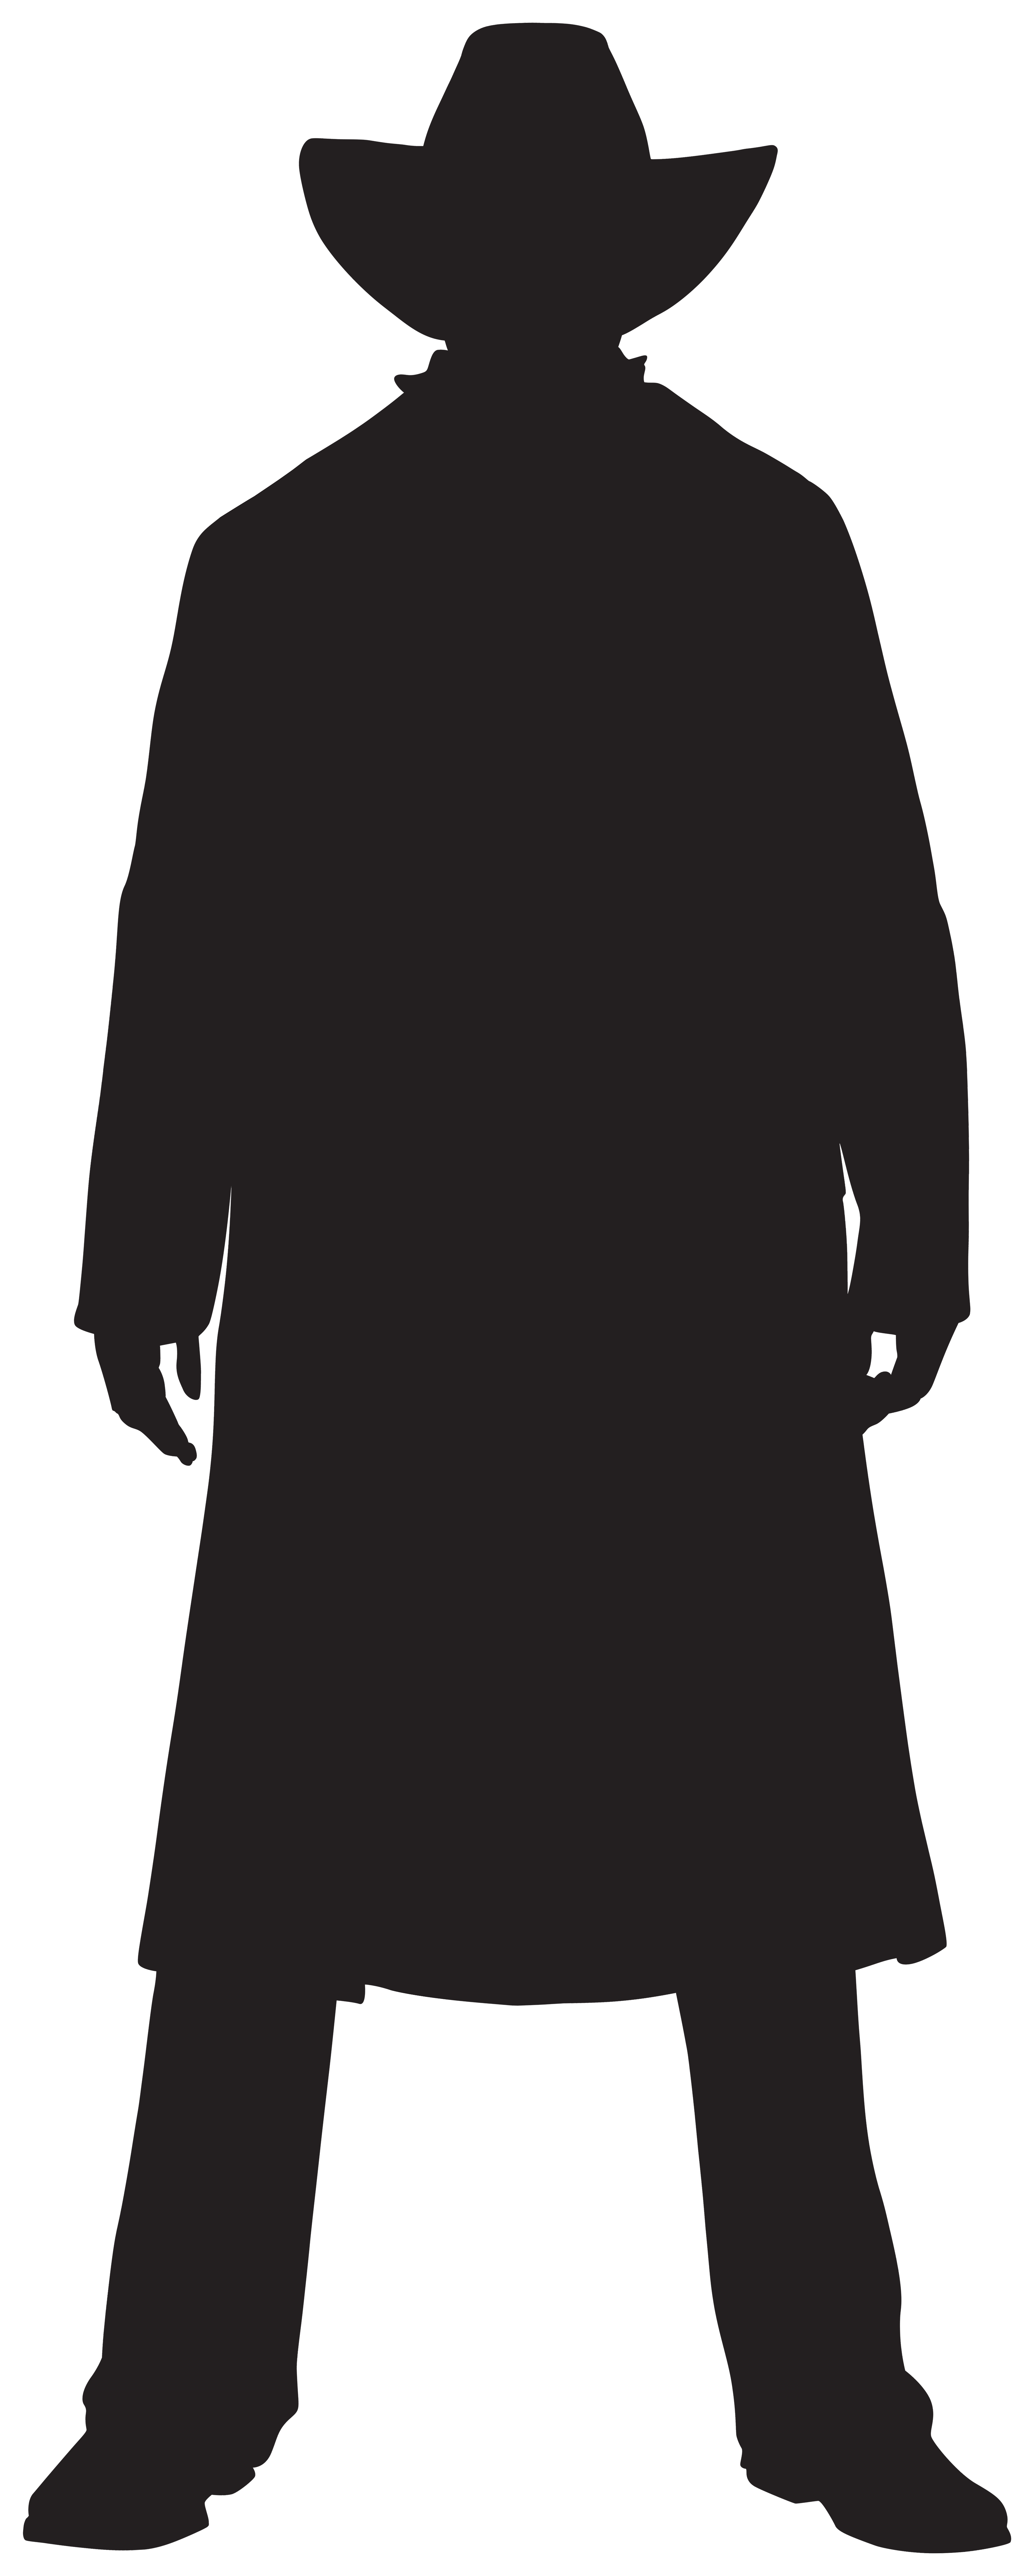 Wild West Cowboy Silhouette PNG Clipart.